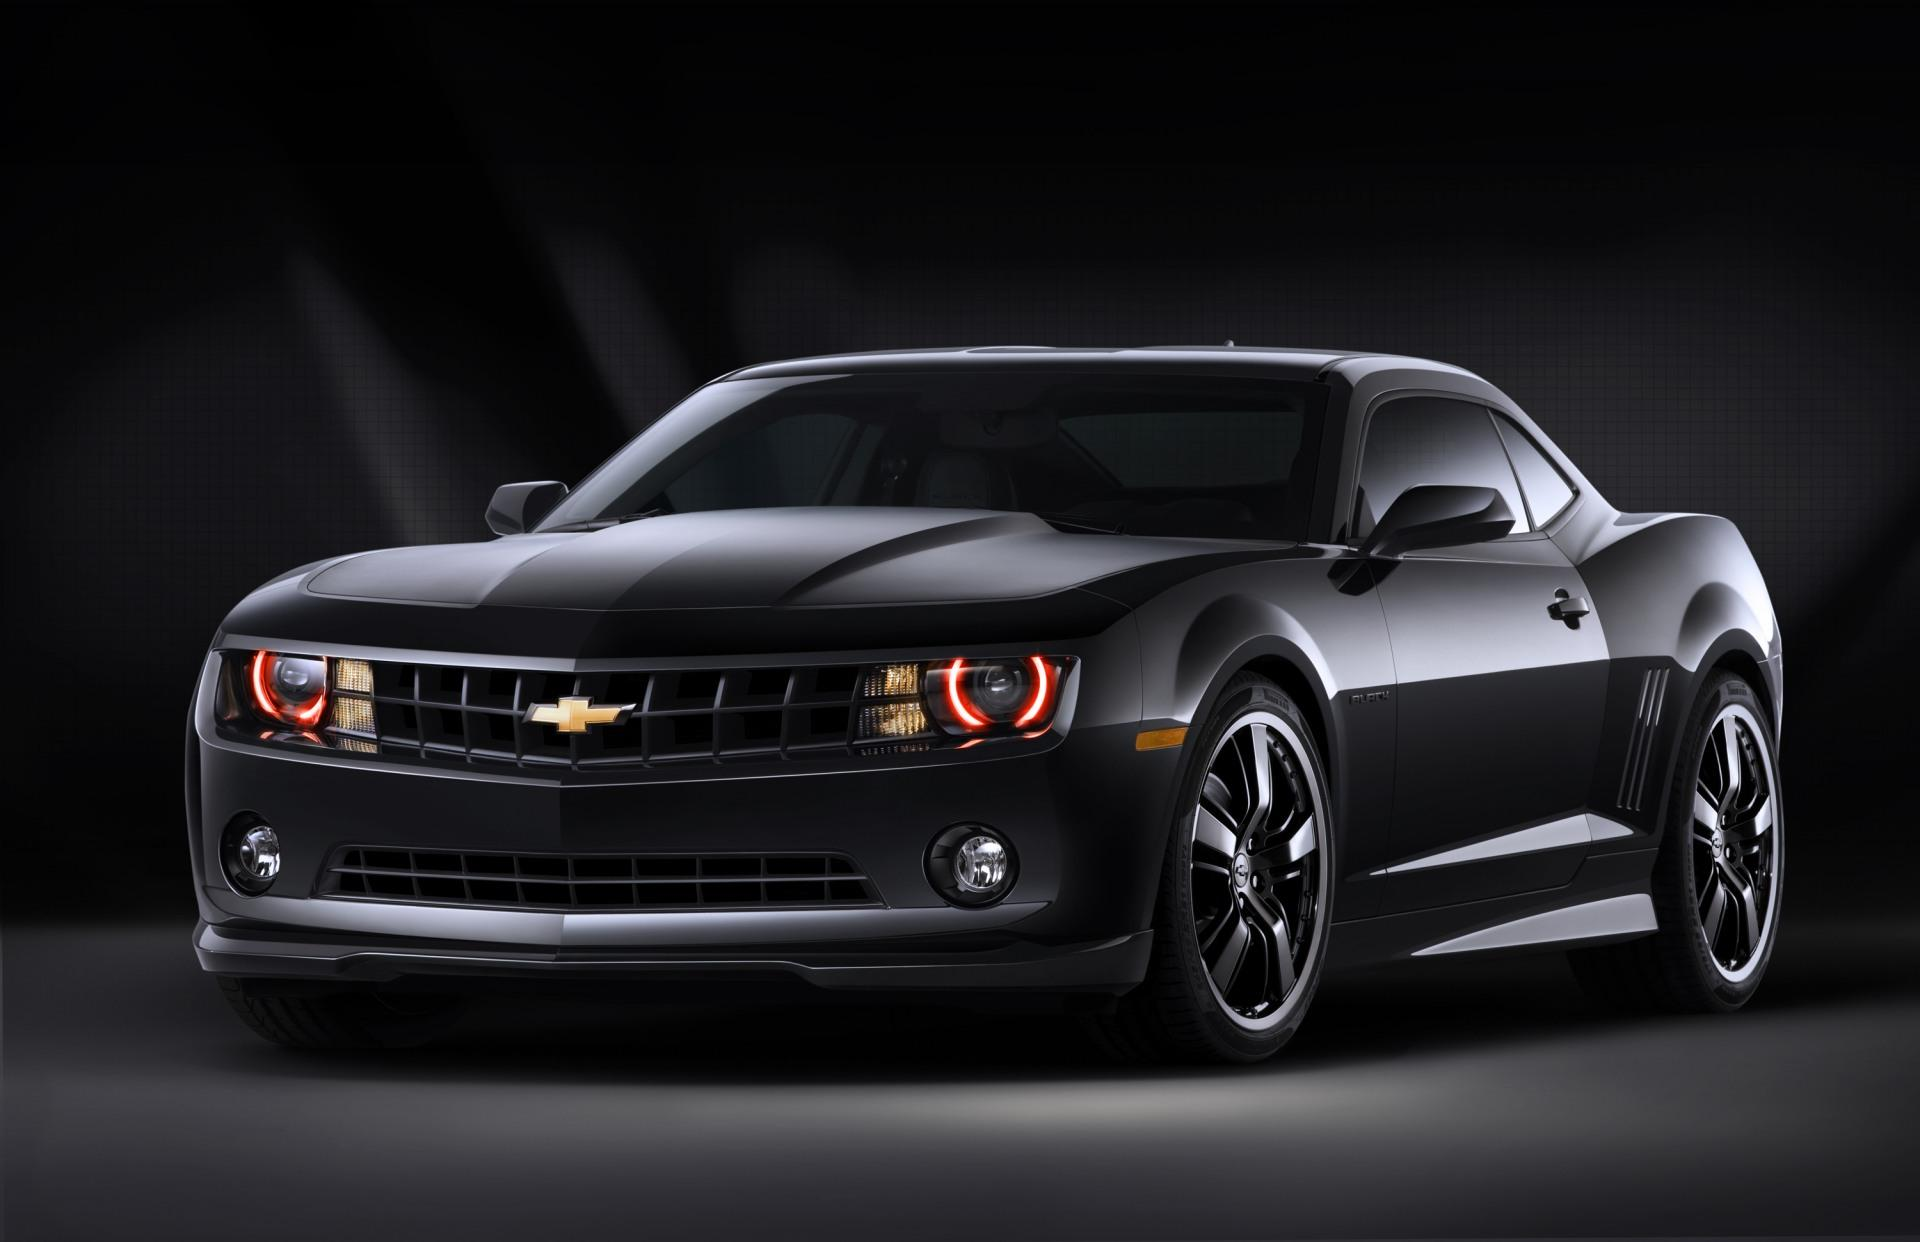 2010 Chevrolet Camaro Black Concept News And Information